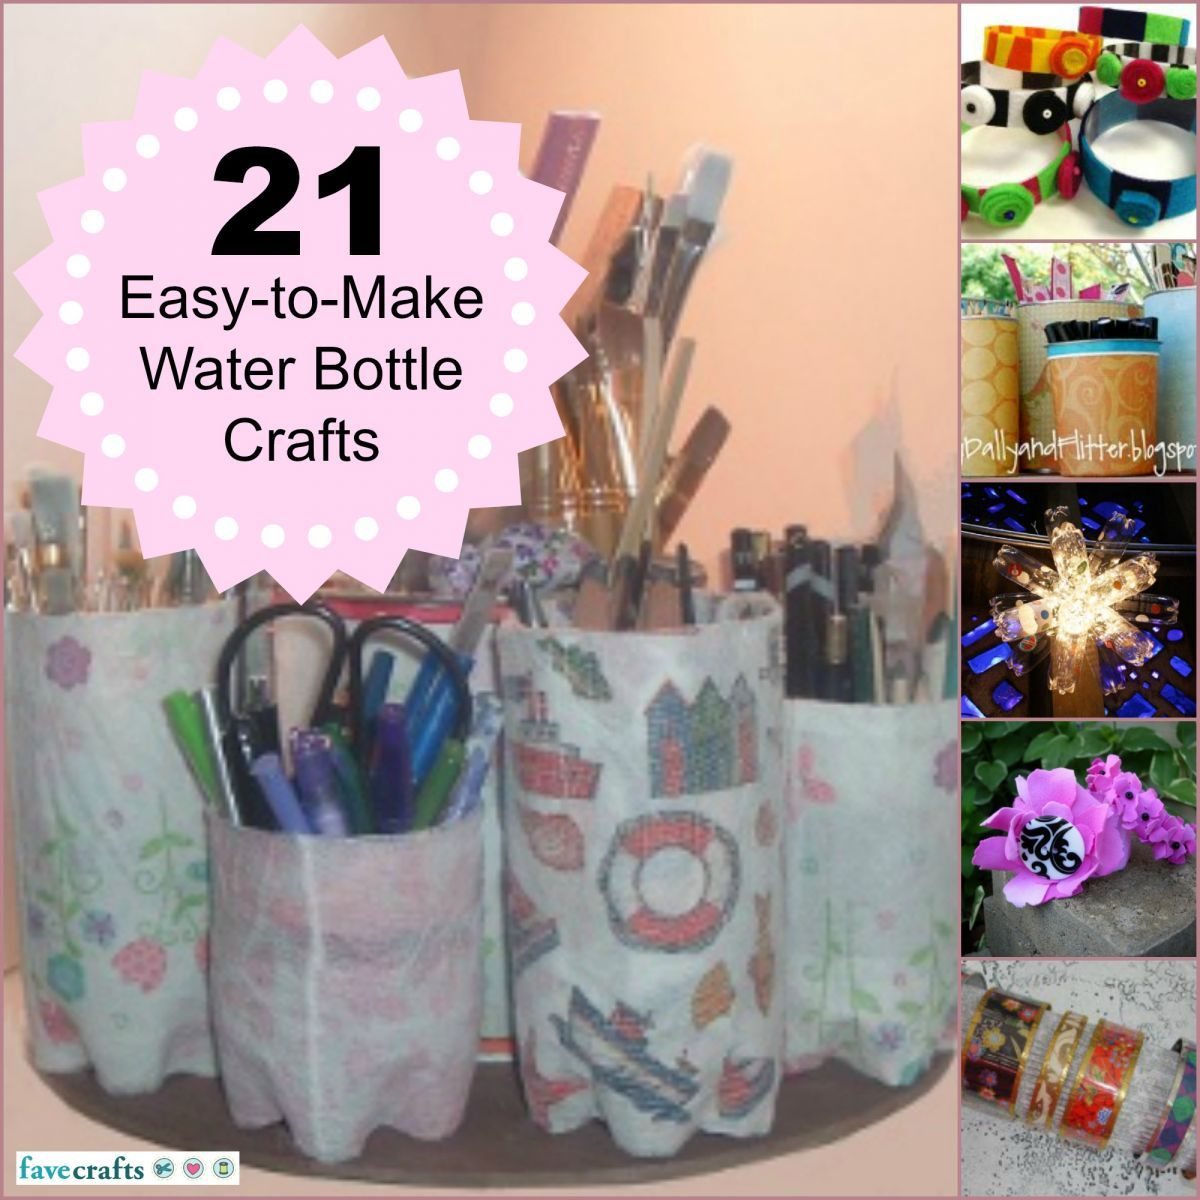 Water Bottle Projects: 34 Easy To Make Water Bottle Crafts